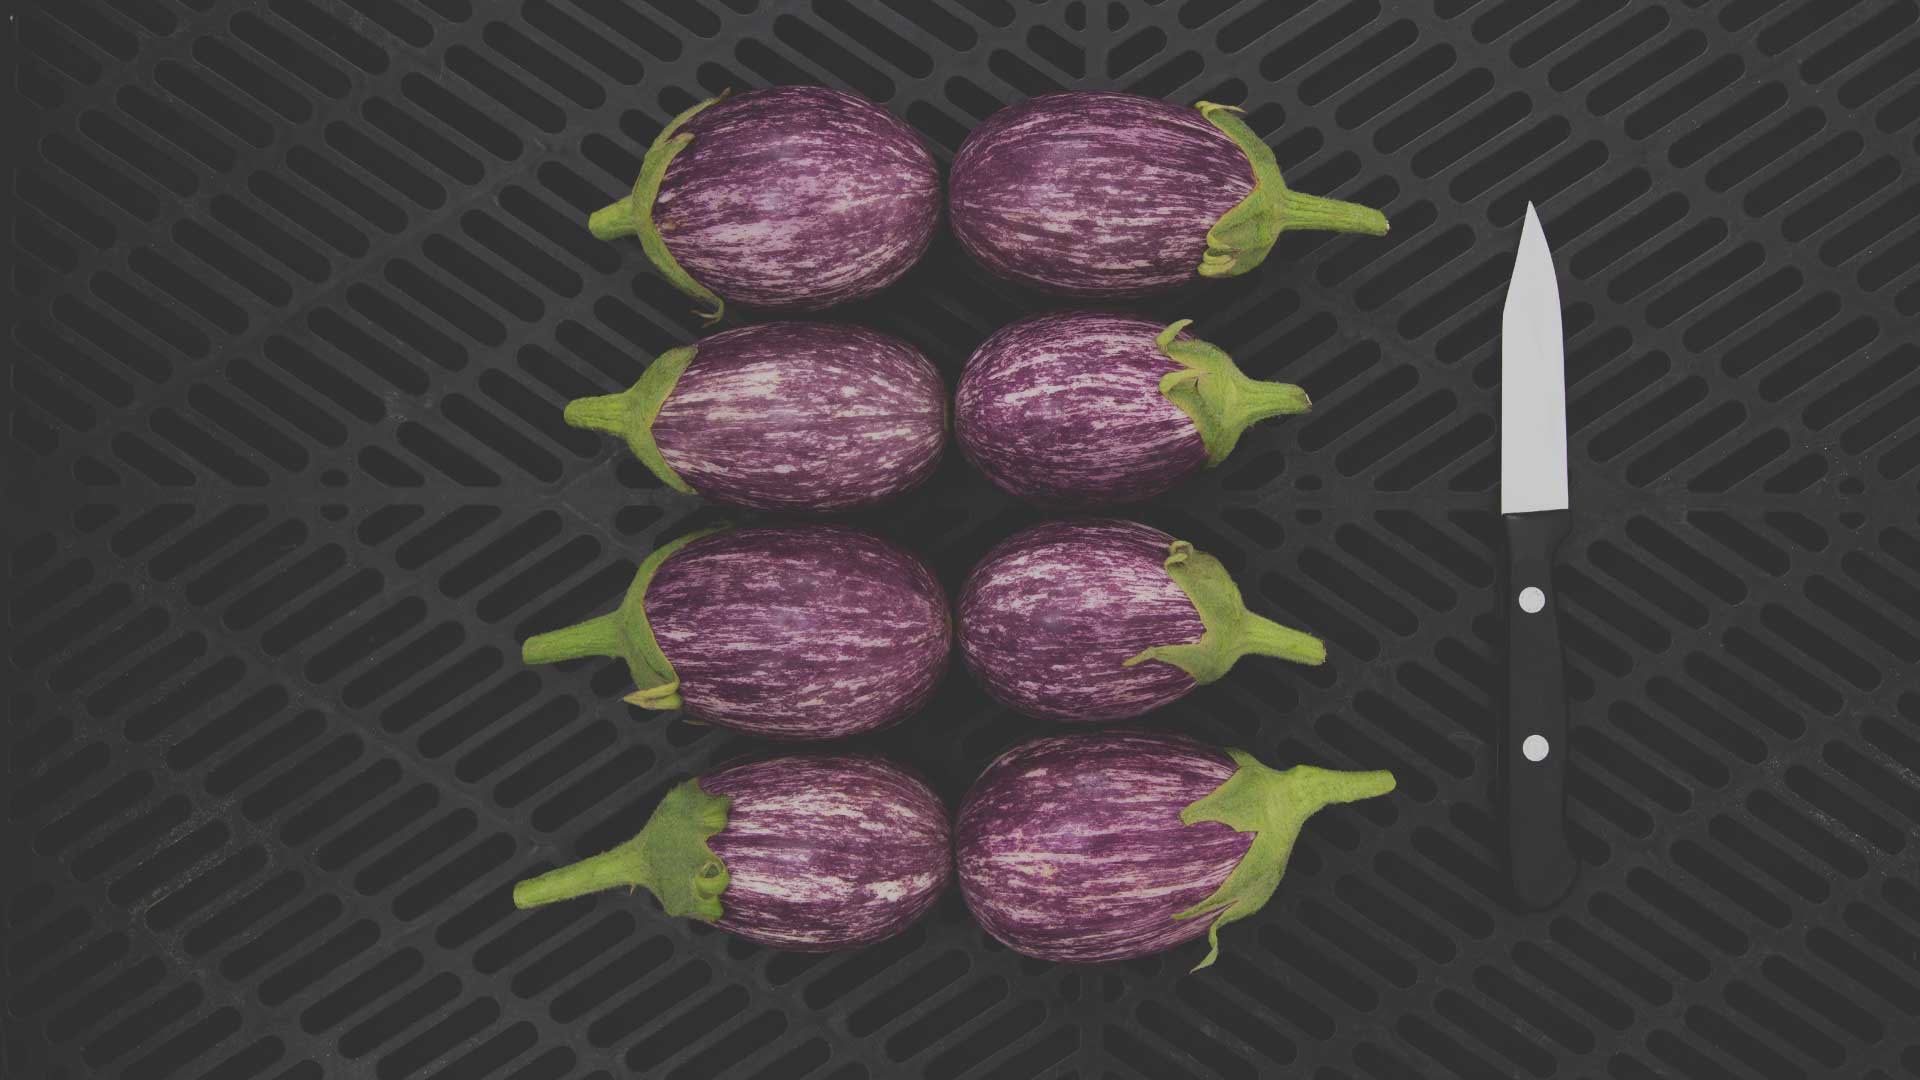 Organic Non-GMO Piccolo F1 Eggplant from High Mowing Organic Seeds